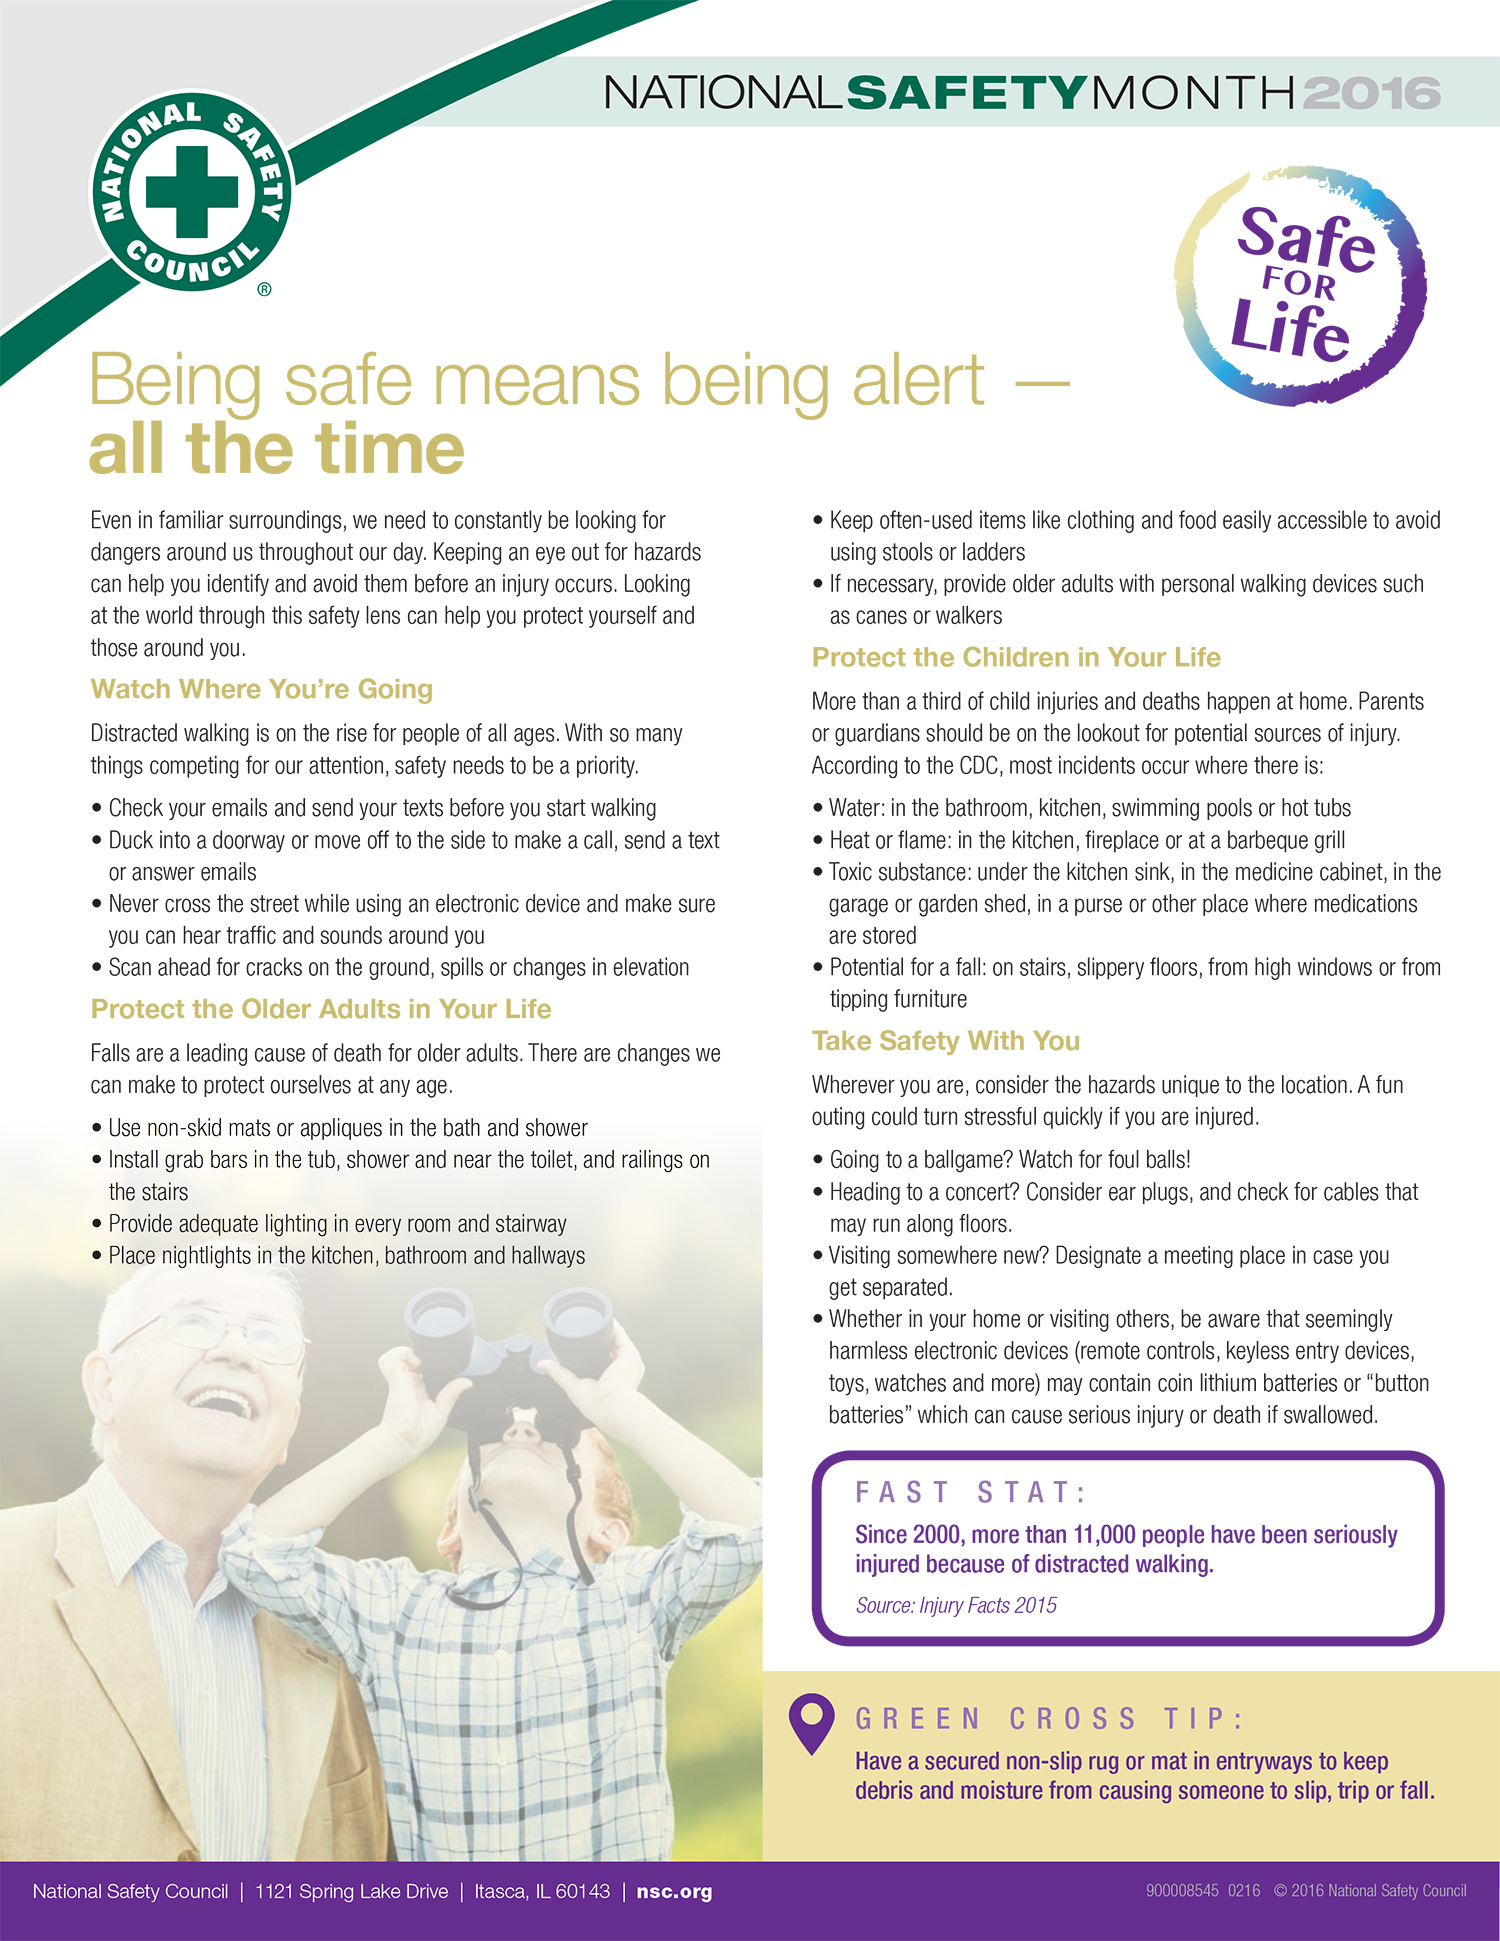 Being safe means being alert - all the time